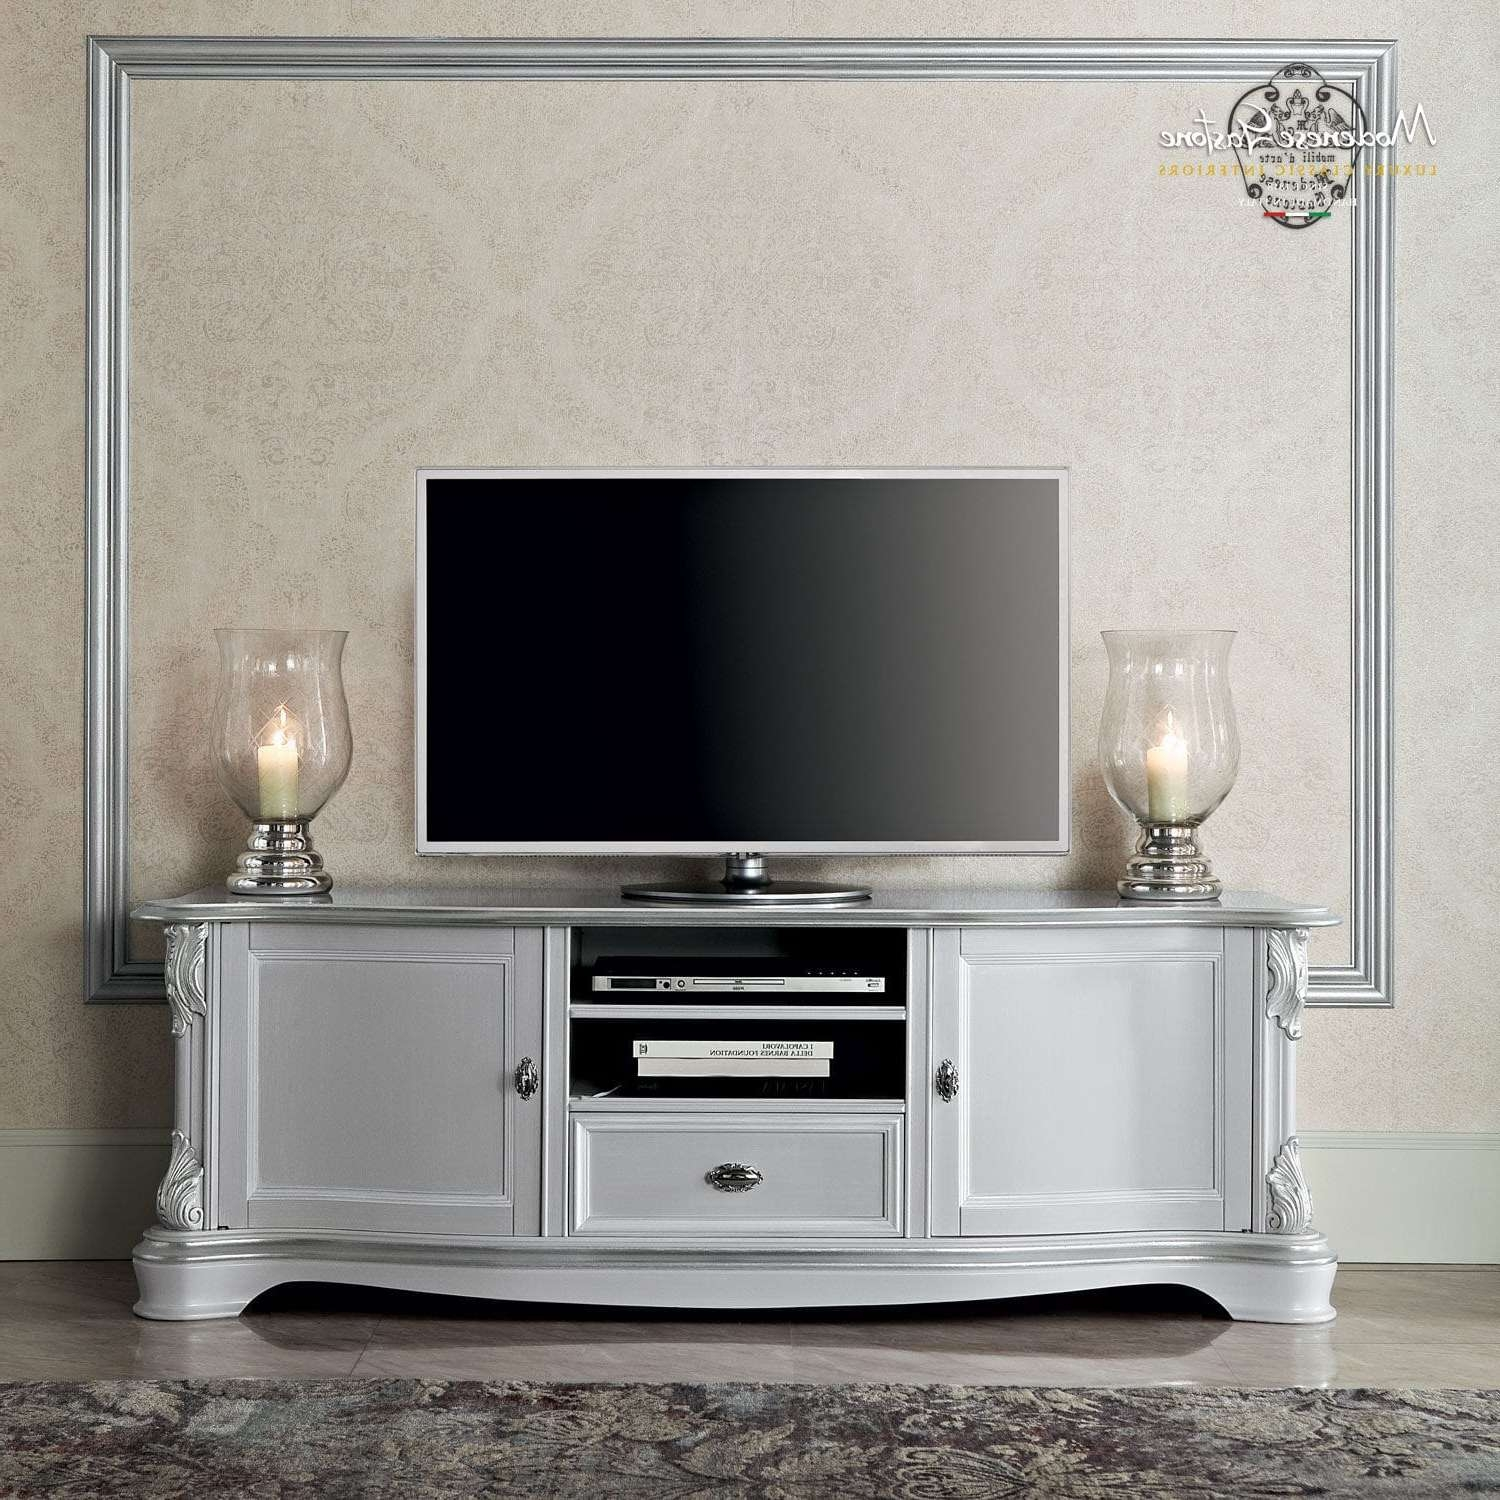 Classic Tv Cabinet / Solid Wood – Bella Vita – Modenese Gastone Inside Classic Tv Stands (View 2 of 20)